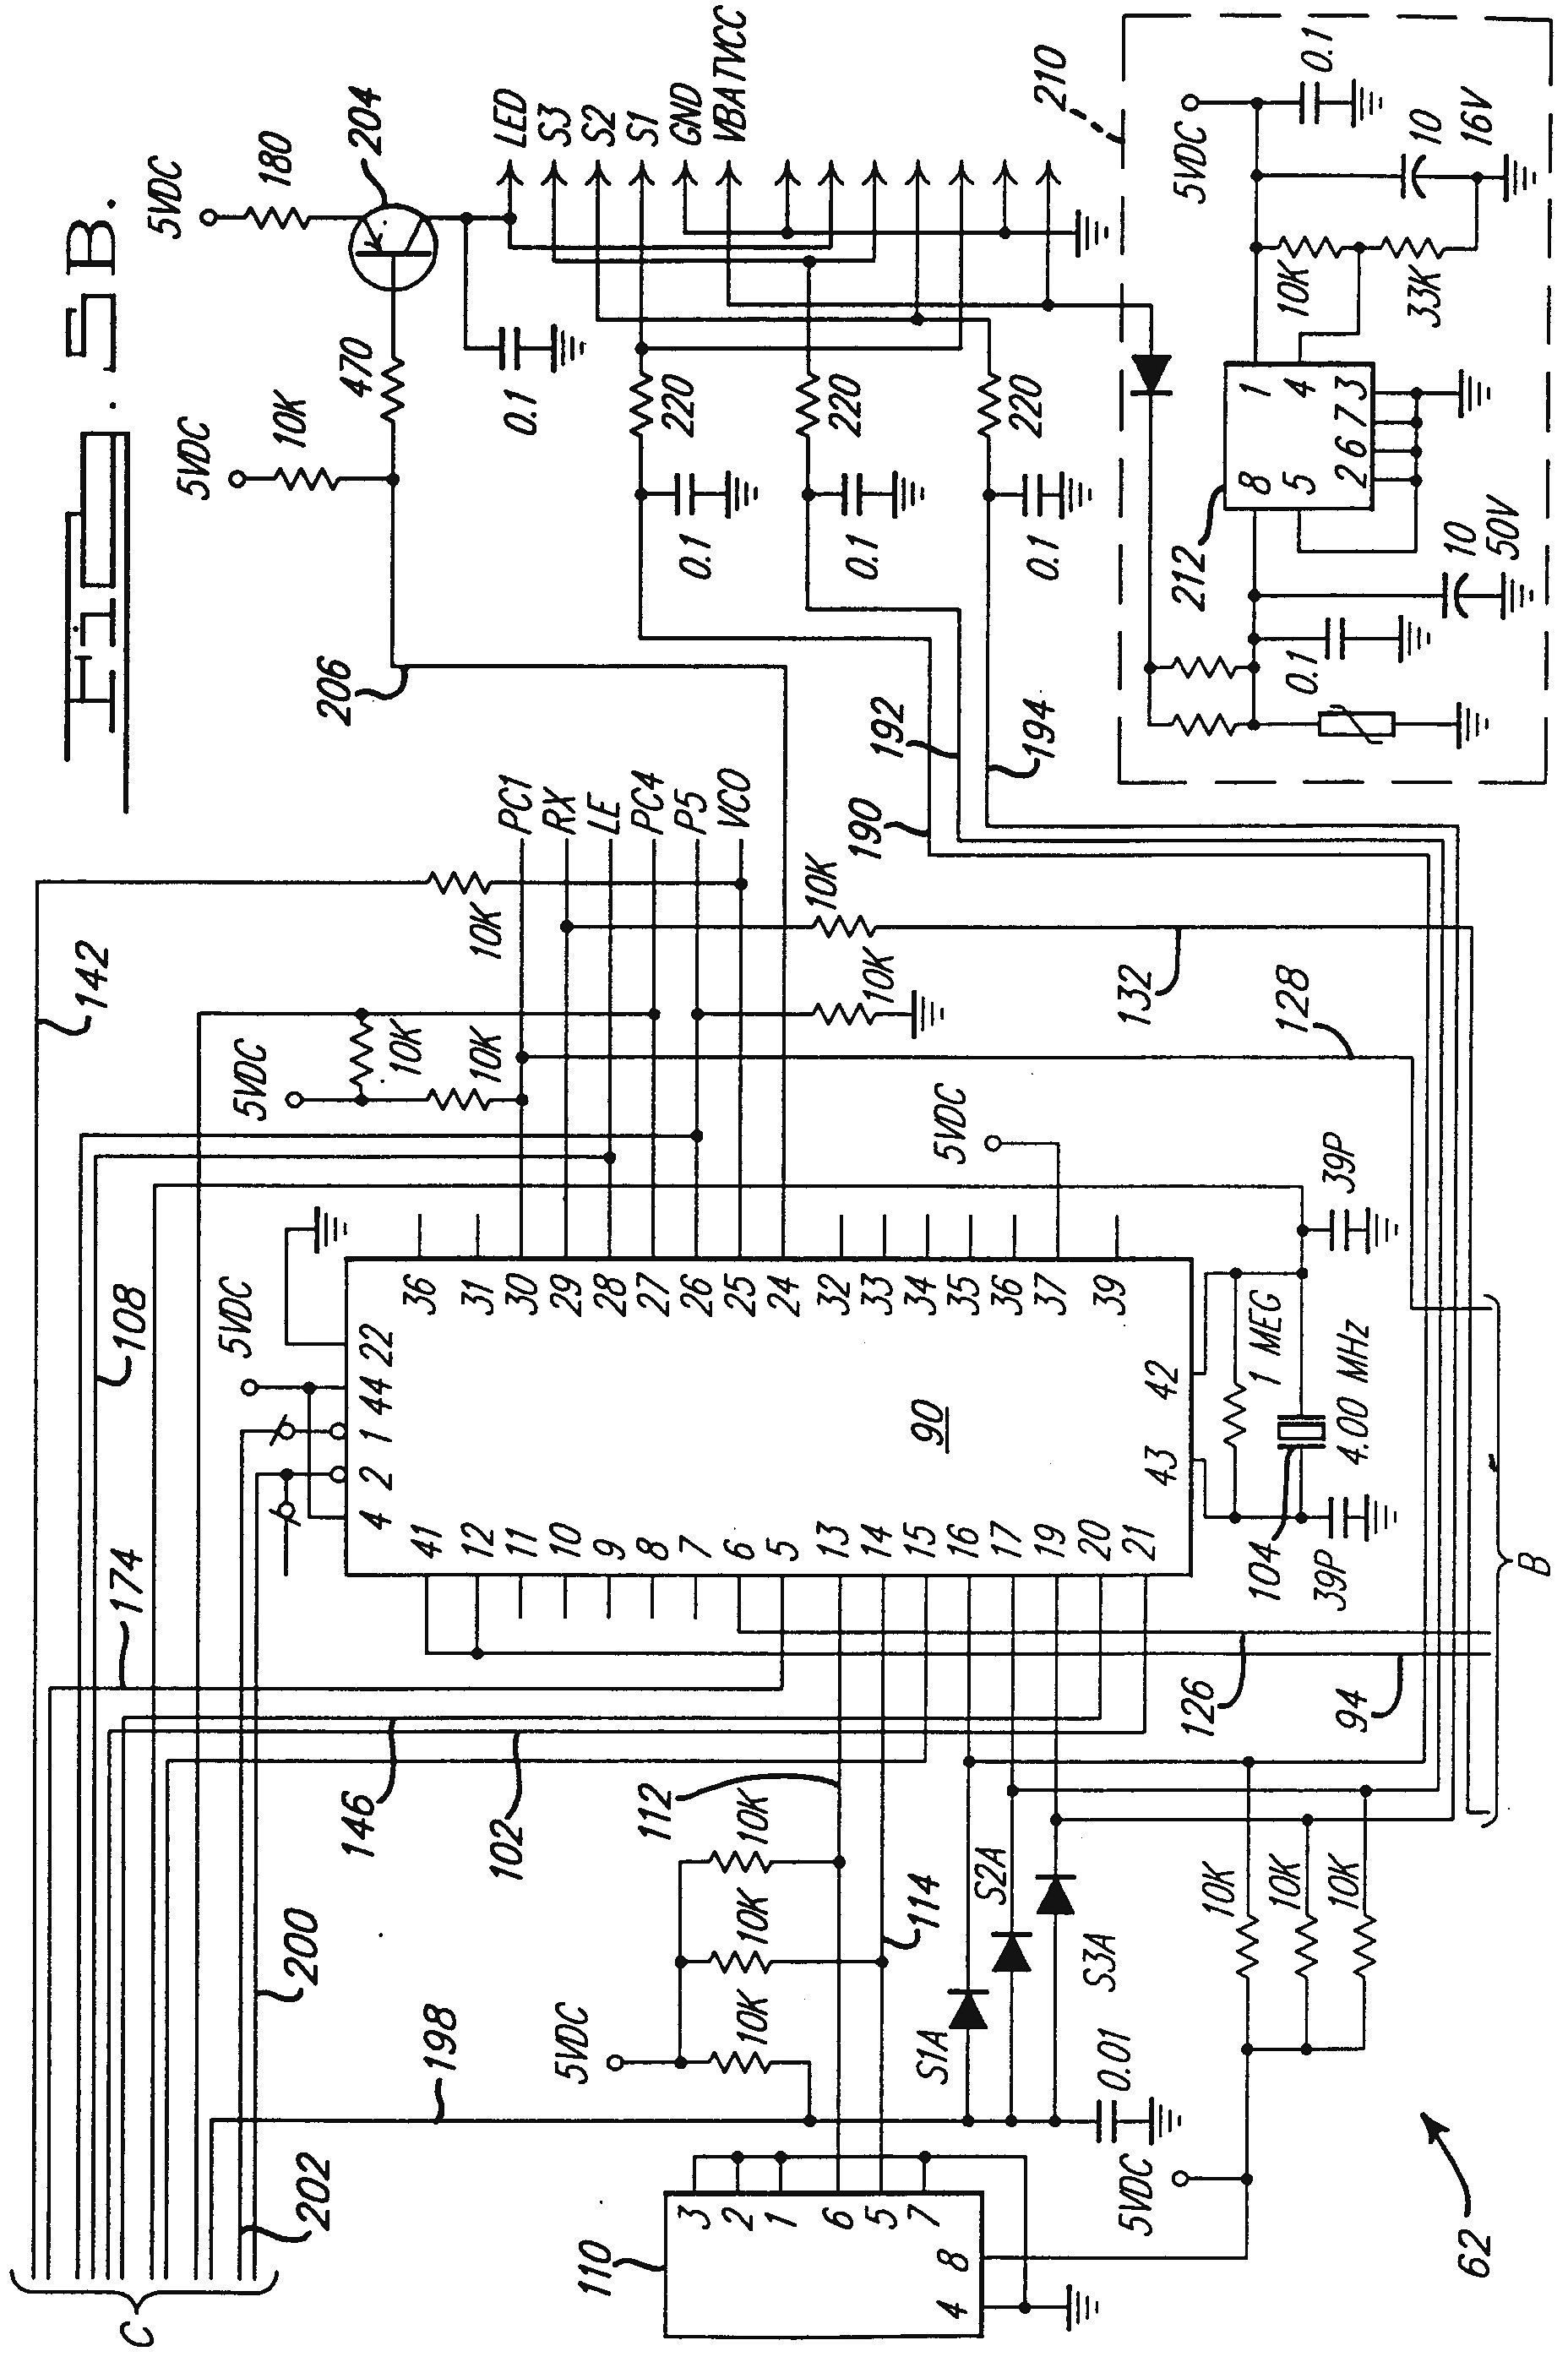 Best Of Genie Garage Door Sensor Wiring Diagram in 2020 | Garage door  sensor, Garage door opener, Liftmaster garage doorPinterest